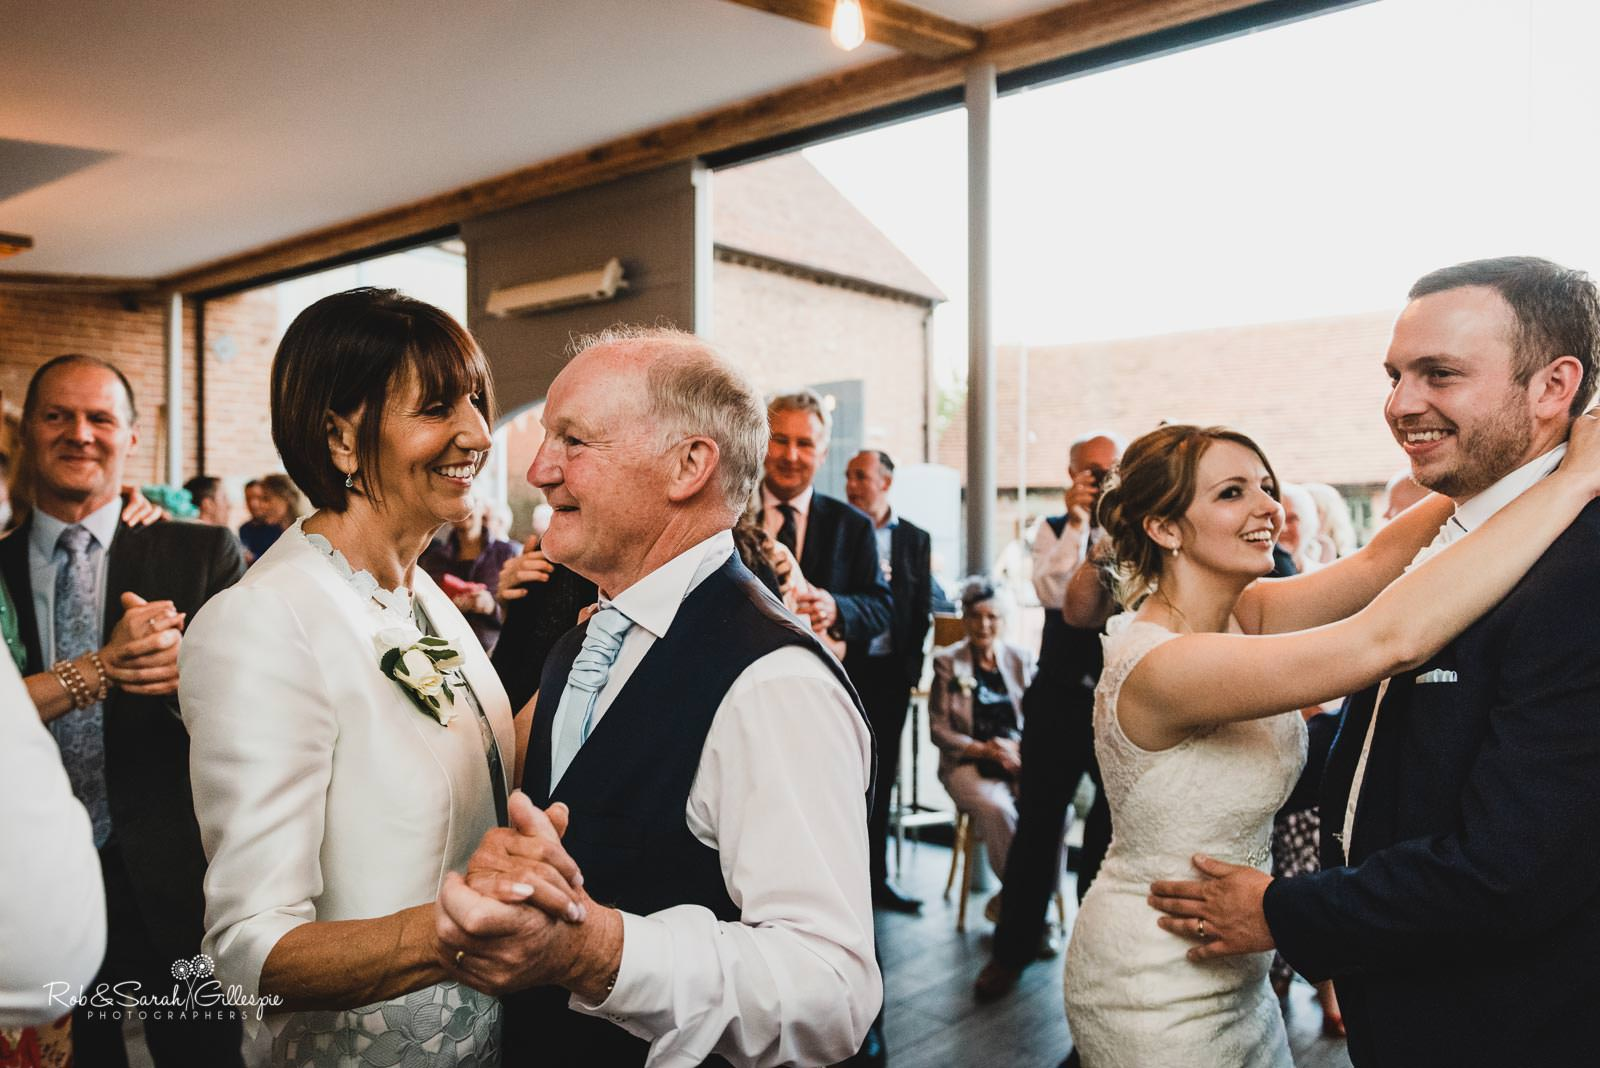 Bride, groom and guests dancing at Swallows Nest Barn wedding